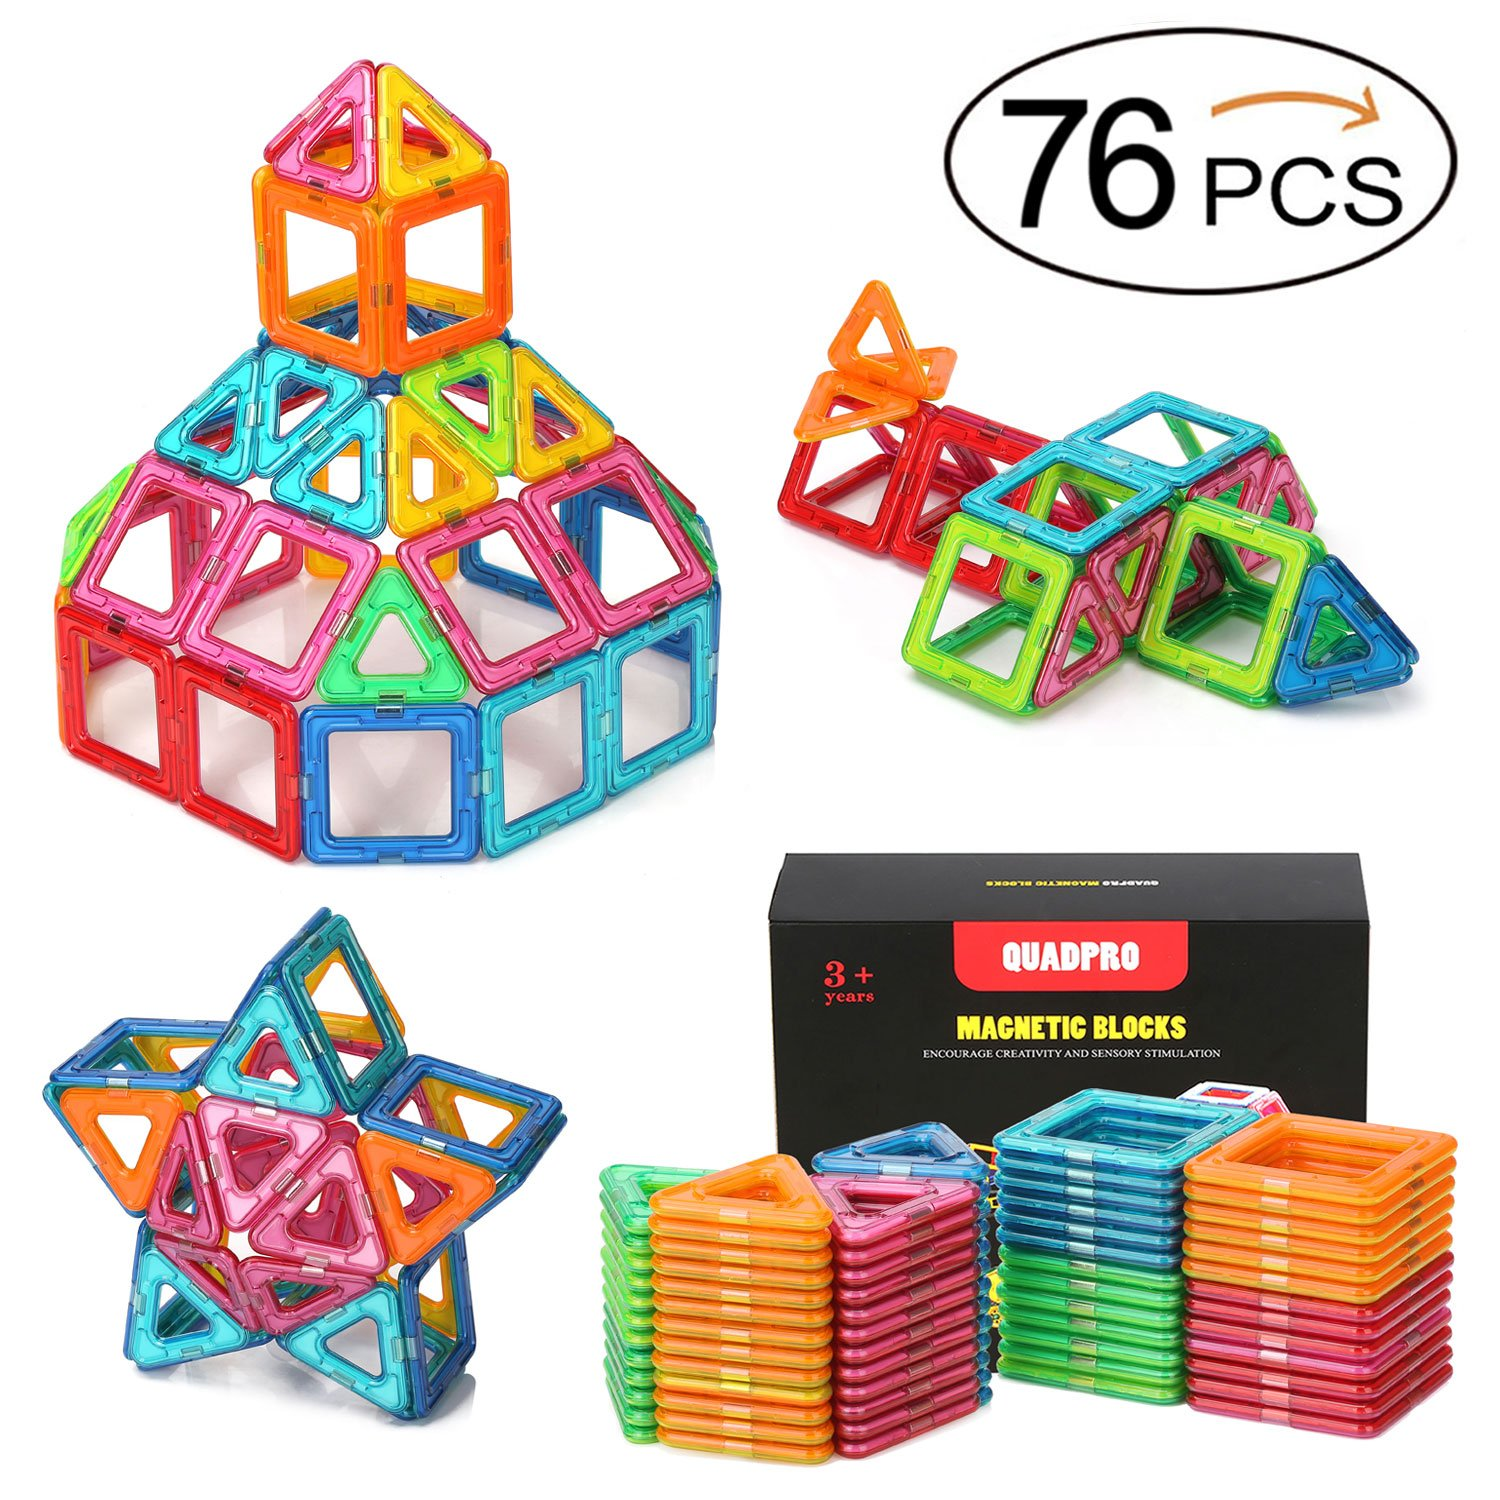 Quadpro 76 Piece Magnetic Blocks Building Toys For Boys Girls, Magnet Tiles Kits For Kids Review